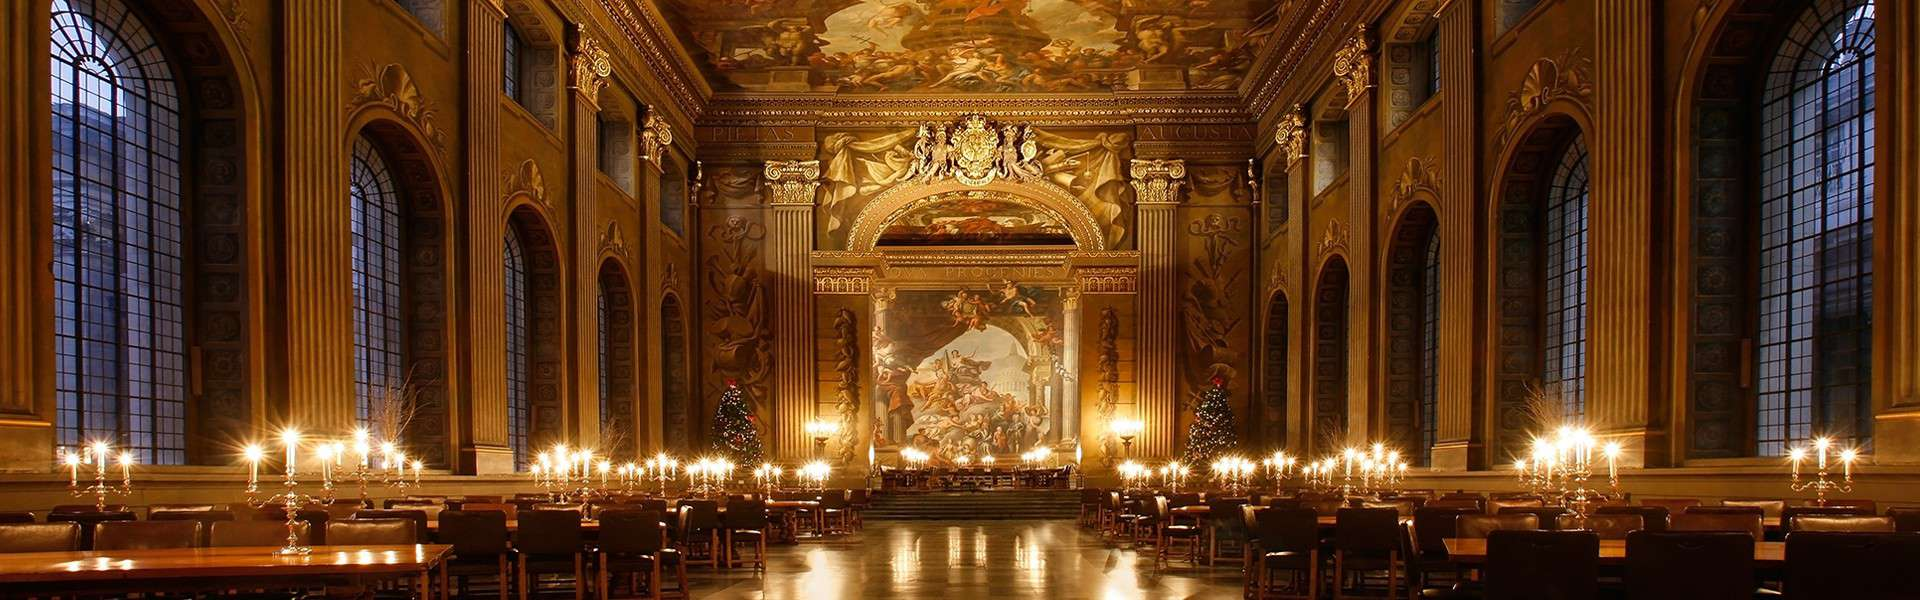 old-royal-naval-college-events